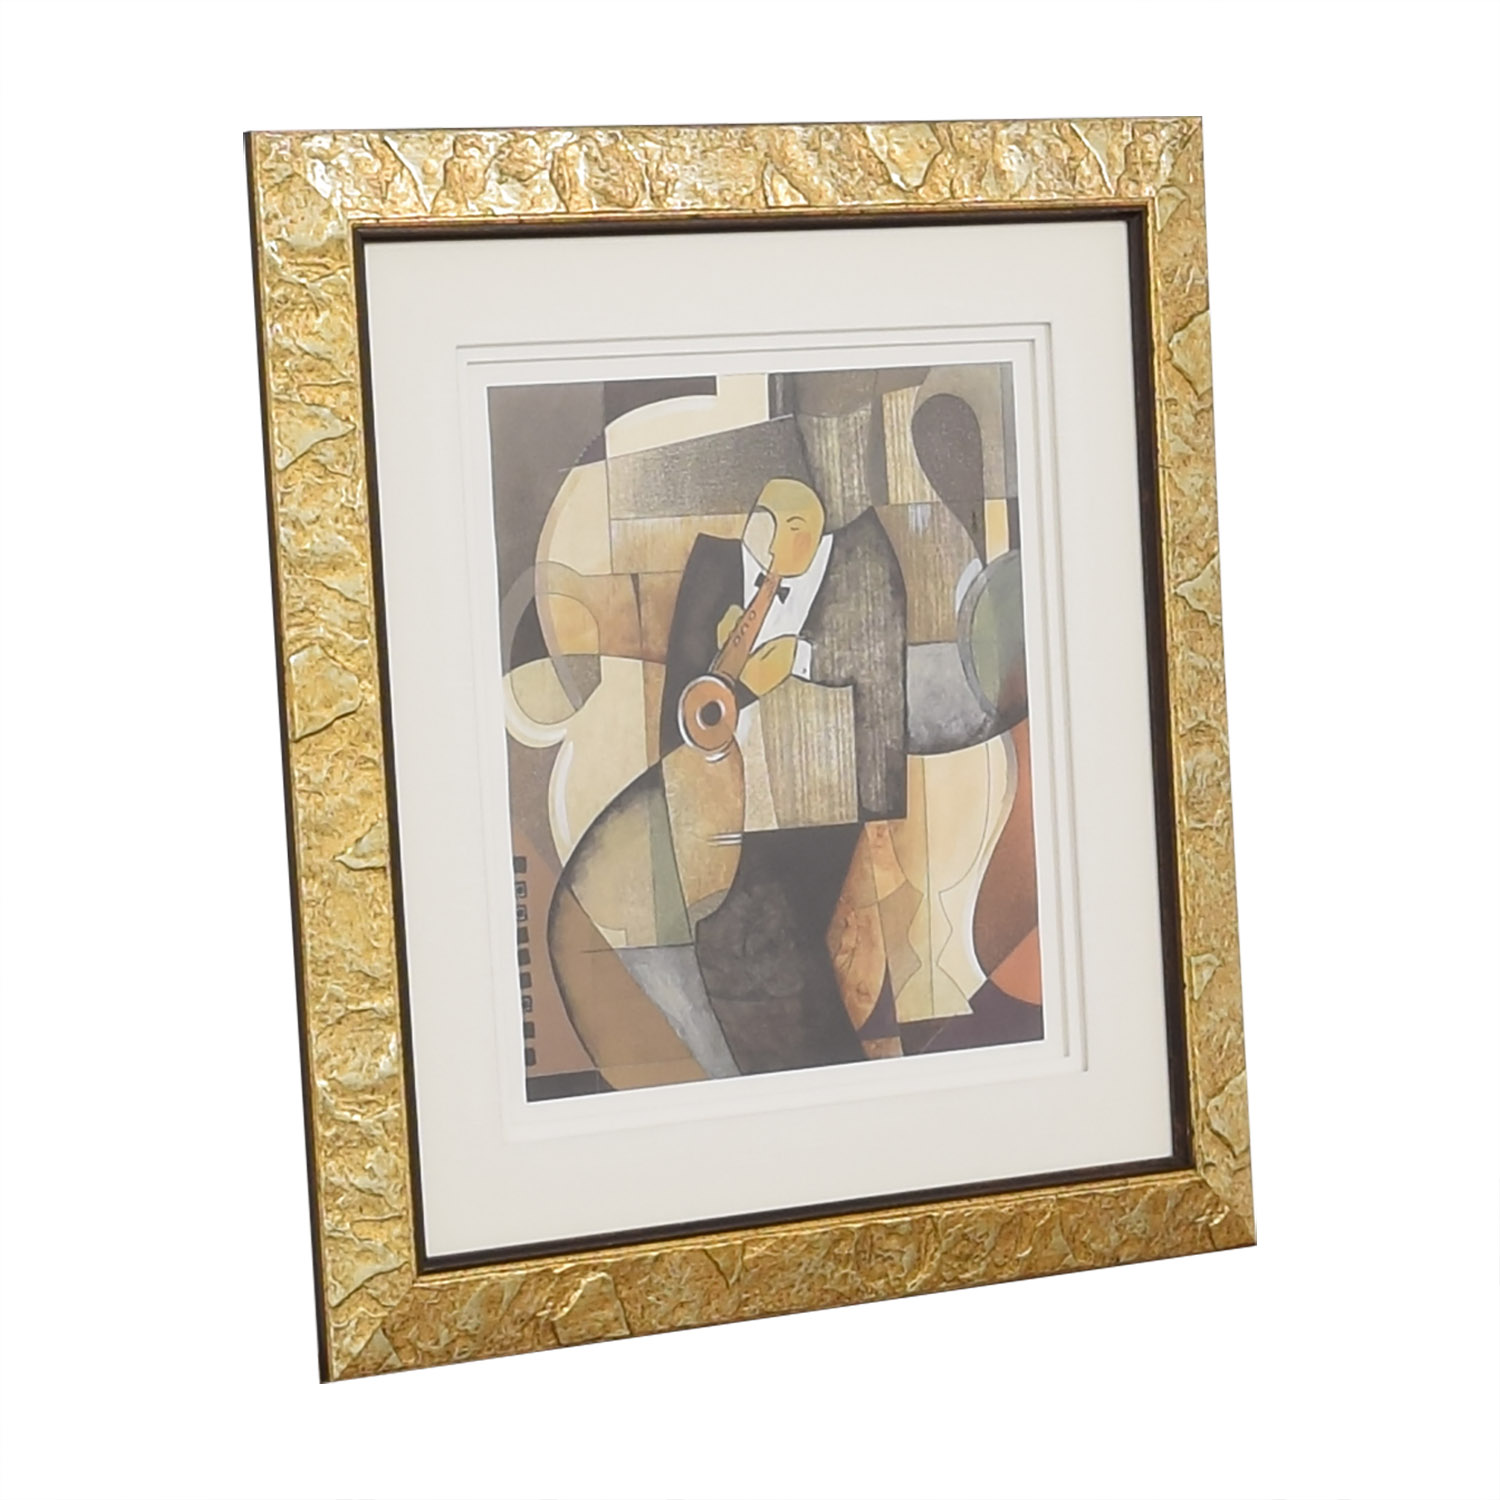 Ethan Allen Ethan Allen Jazz Greats Frame d Art Decor